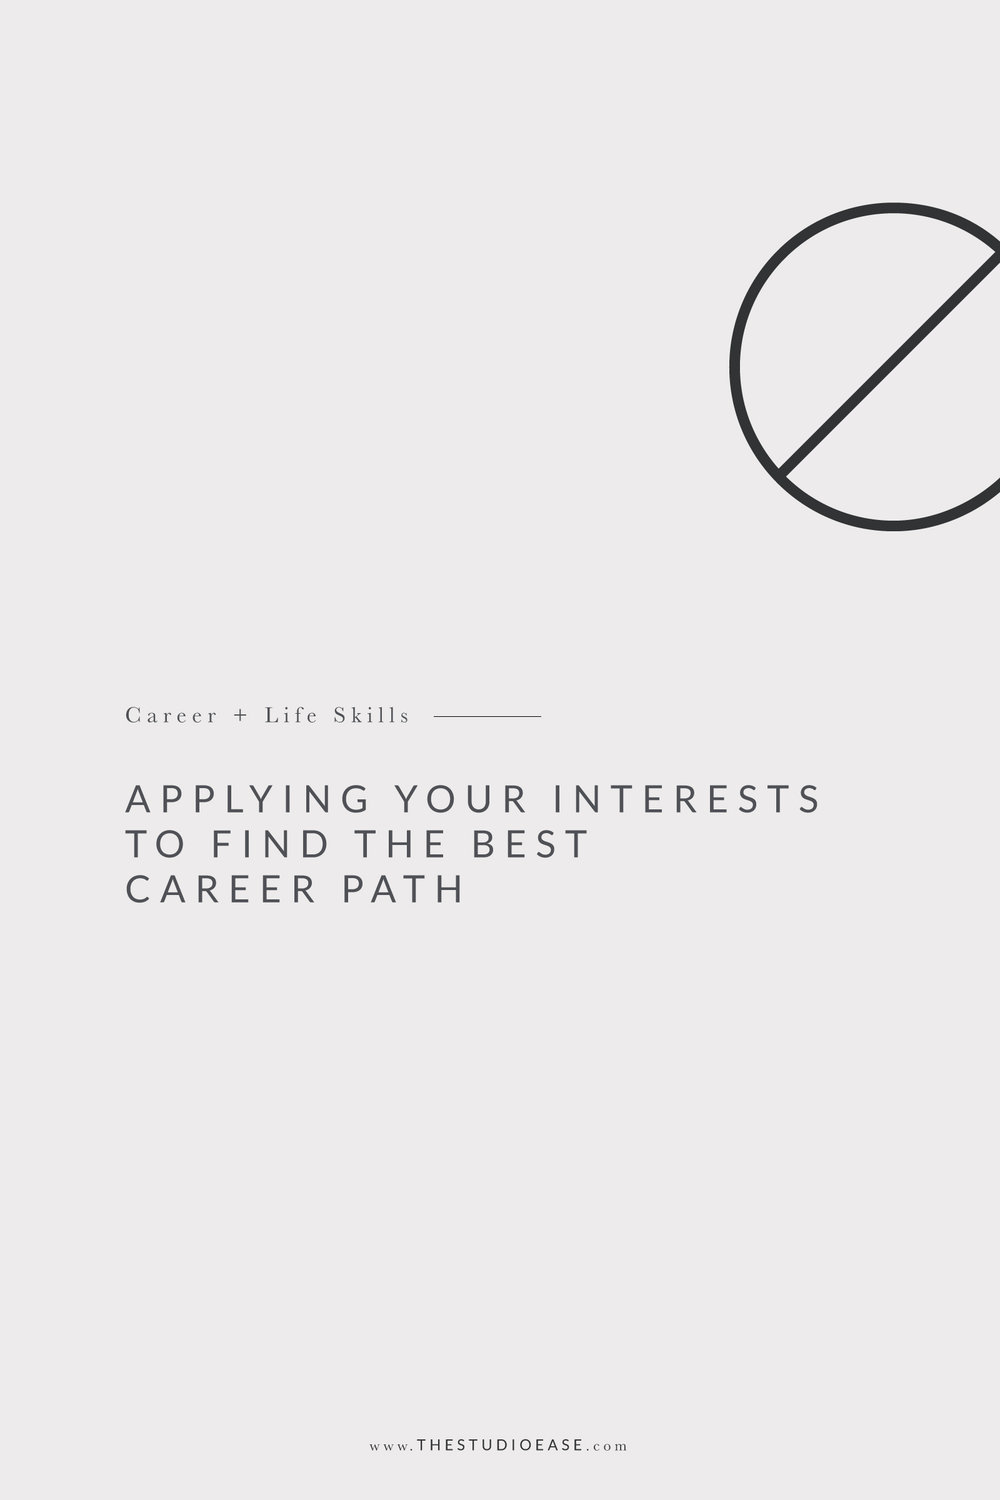 Applying Your Interests to Find the Best Career Path | career, career advice, career help, business advice, interests, personality test